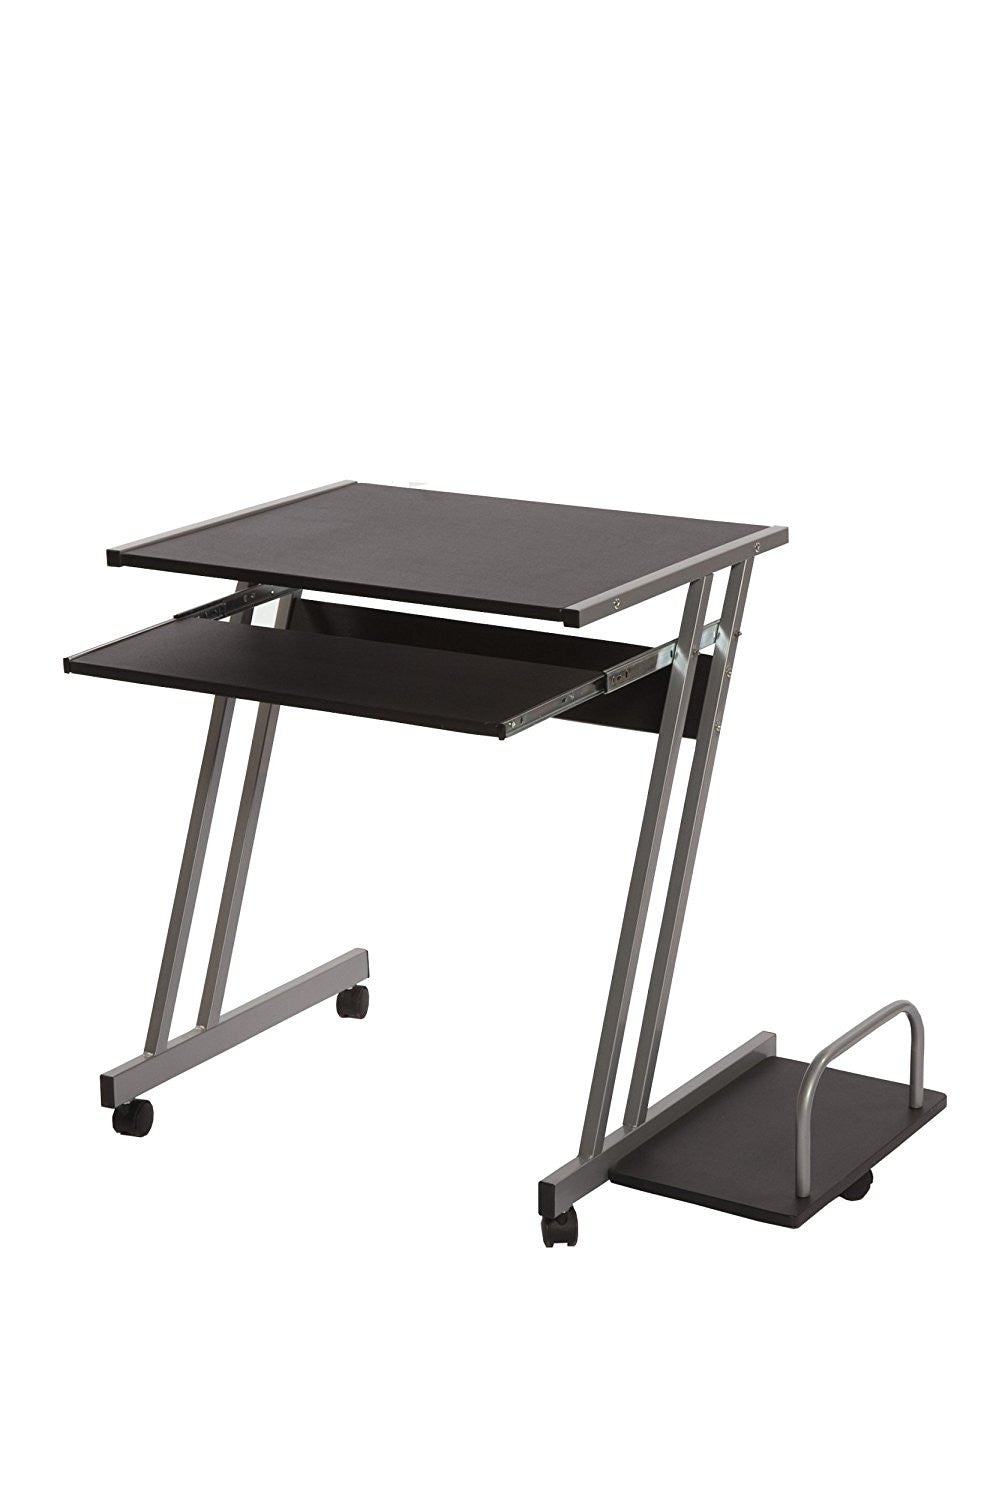 Target Marketing Systems Cambridge Mobile Computer Desk with Sliding Keyboard Tray, CPU Shelf, and 4 Caster Wheels, Black